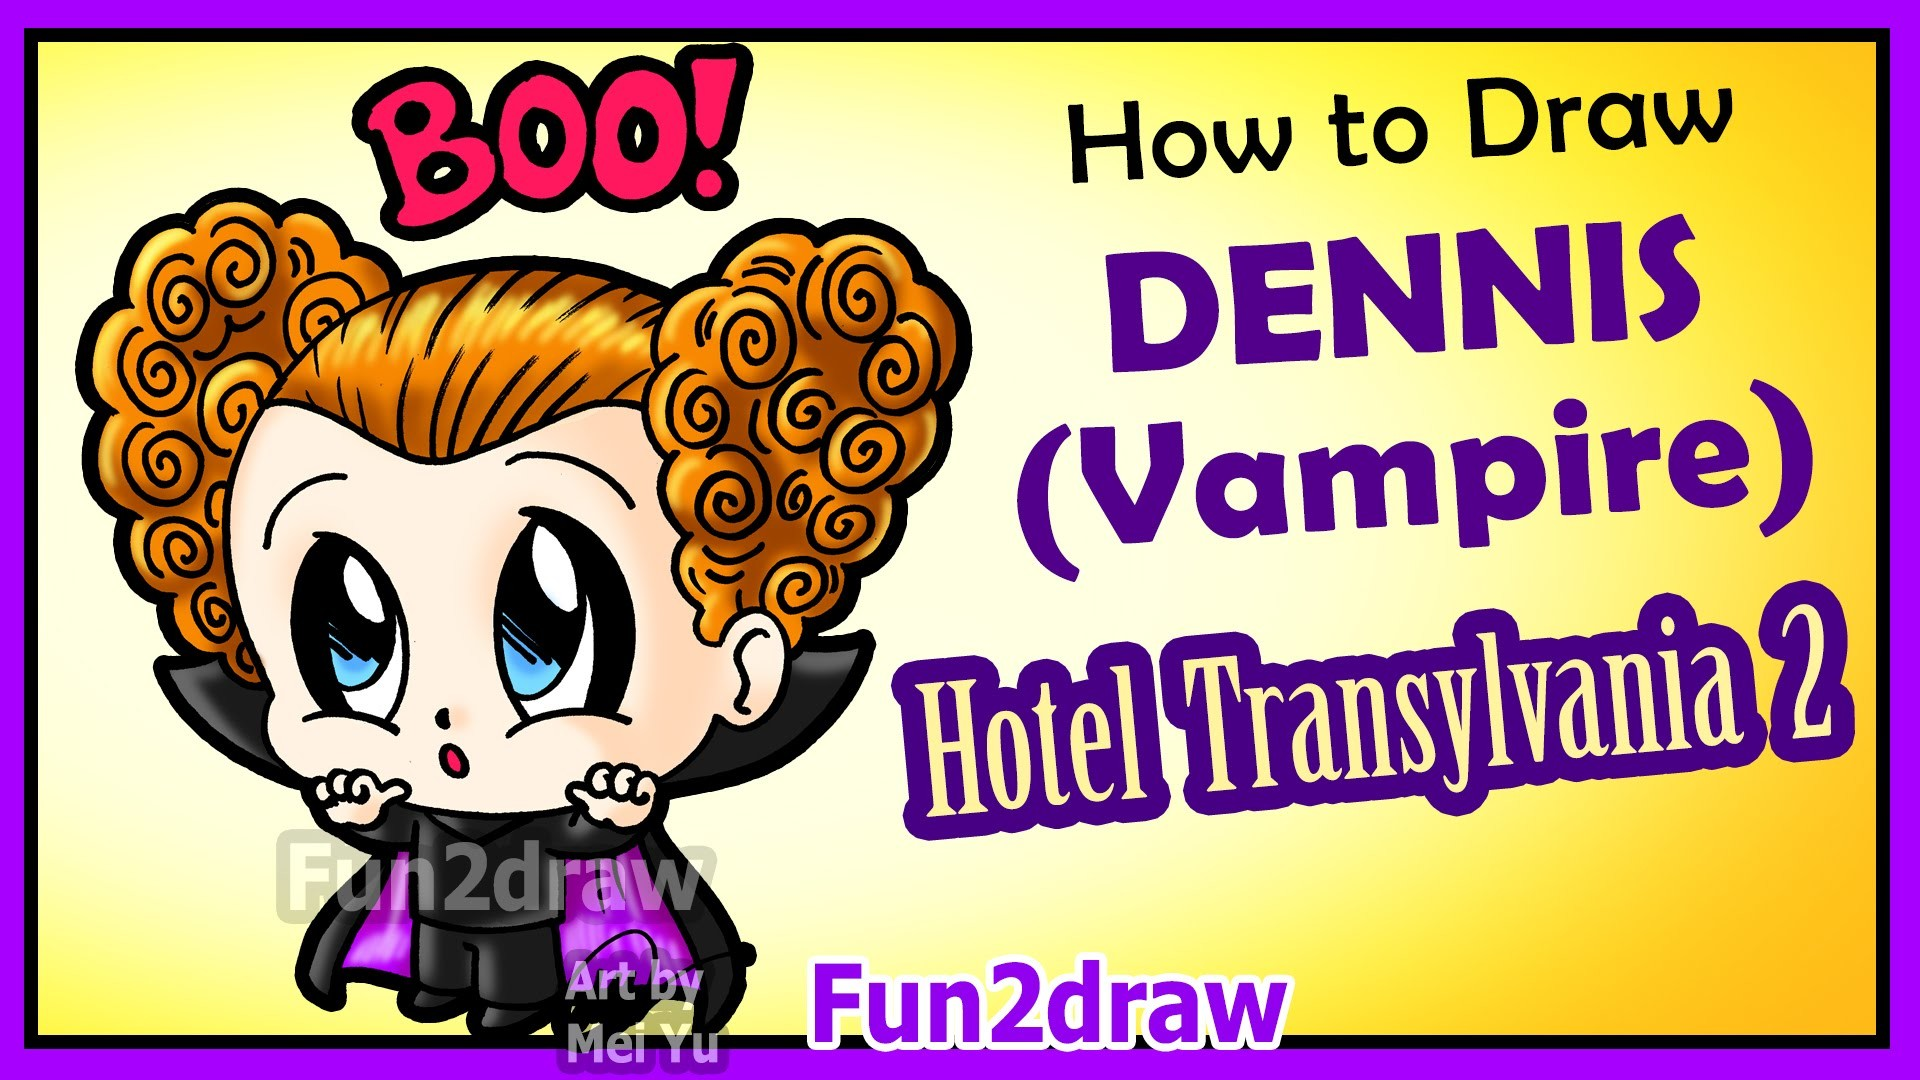 hotel transylvania 2 - how to draw cute dennis vampire boy + fun